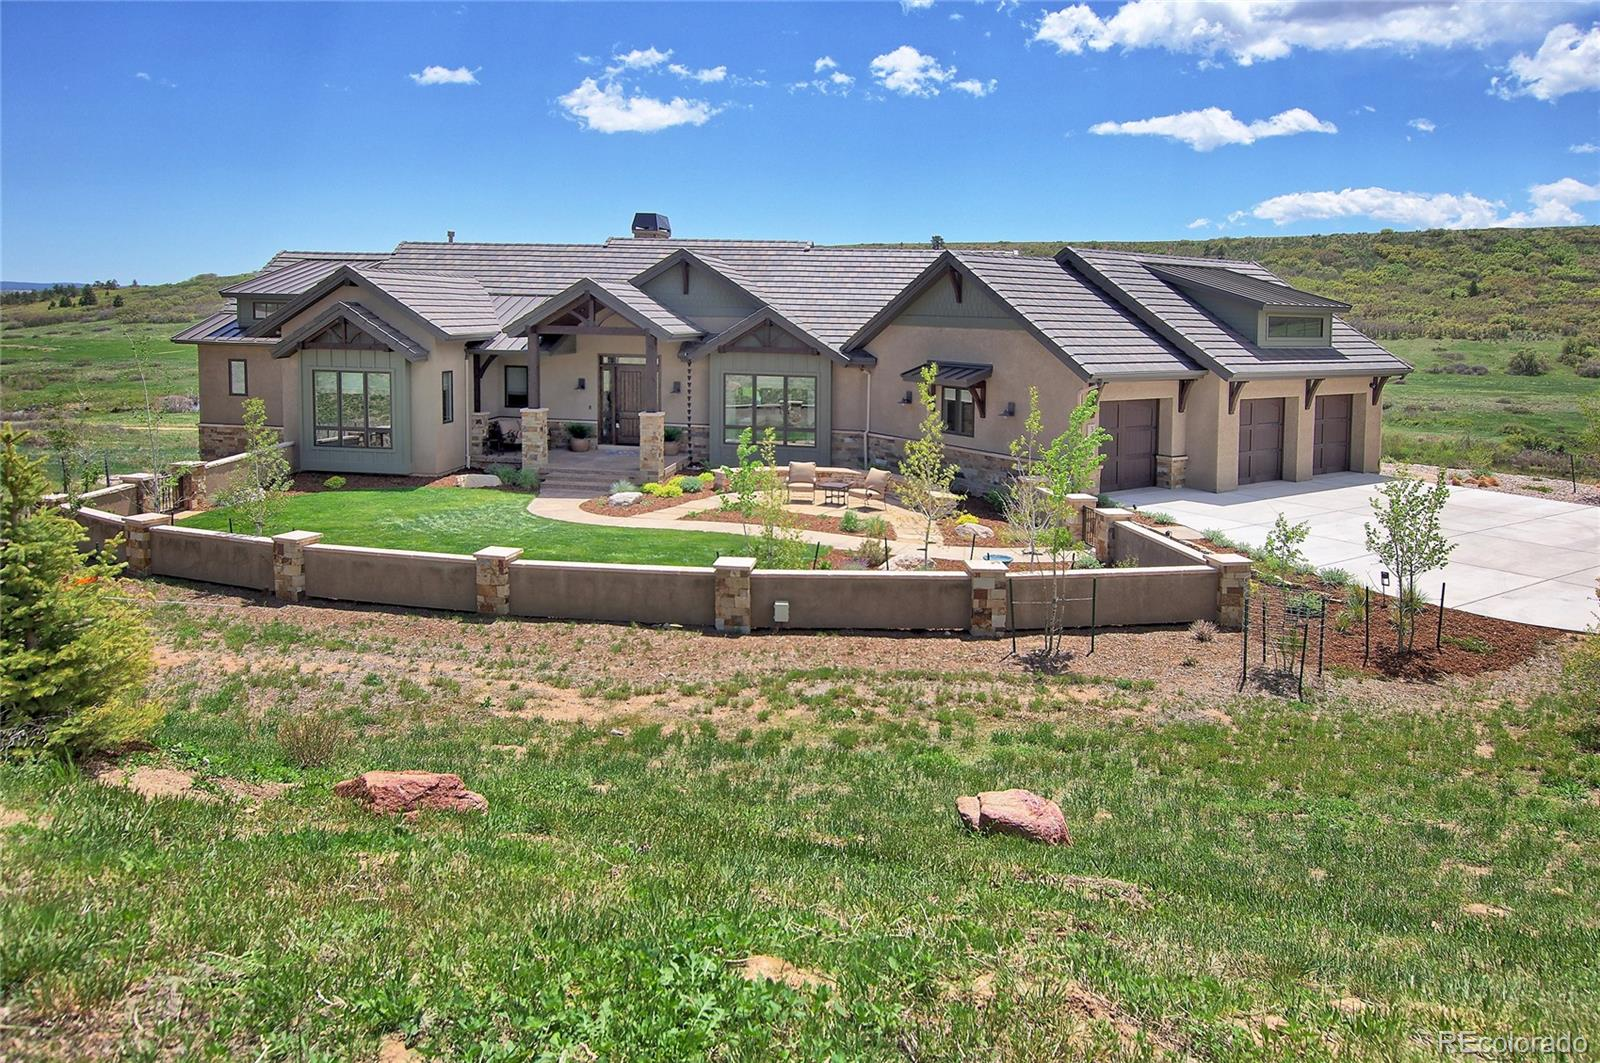 Your once in a lifetime dream home is now available! Multiple award winning 2018 Parade of Homes model built by luxury builder Comito Building and Design. Perfectly situated above cascading beaver ponds and Bristlecone Lake on a private 1.43 acre Forest Lakes Estate lot. Incredible unobstructed mountain, valley, stream and lake views. This home delivers the best of Colorado lodge living. The positioning of the home takes full advantage of gorgeous sunrises and sunsets. From the moment you visit this home you will be impressed by the attention to detail, exceptional design and unsurpassed quality inside and outside. Main level living at its finest with an open and inviting feel. Just a few of the many amazing features include solid alder wood doors, pecan wood floors, custom hand painted walls, Pella windows with built in blinds, custom woodwork, vaulted wood beam ceiling, gorgeous granite and tile, impressive lighting, professional grade Wolf and Subzero appliances, induction cooktop, steam oven, cantina sliding window system which opens the kitchen to the deck, amazing wet bar, extensive use of beautiful stone and many more spectacular features. The elegant master suite includes a walkout to the deck, luxurious master bathroom and huge custom closet. The rock surround wet bar near the rec room is perfect for entertaining friends. There are two charming suites in the basement with their own impressive bathrooms. Sip wine on the covered deck and listen to the peaceful sounds of the flowing creek and waterfalls while enjoying the mountain, lake and wildlife views. The deck includes a fire pit table and 2 infrared heaters to keep you warm on those cool Colorado evenings. If you choose to unwind and relax after a long day there is a private hot tub just outside the walkout basement. You have to see this home to believe all of the custom features it has to offer! The homeowners have lovingly cared for this home and it shines. Prepare to fall in love. Welcome home!